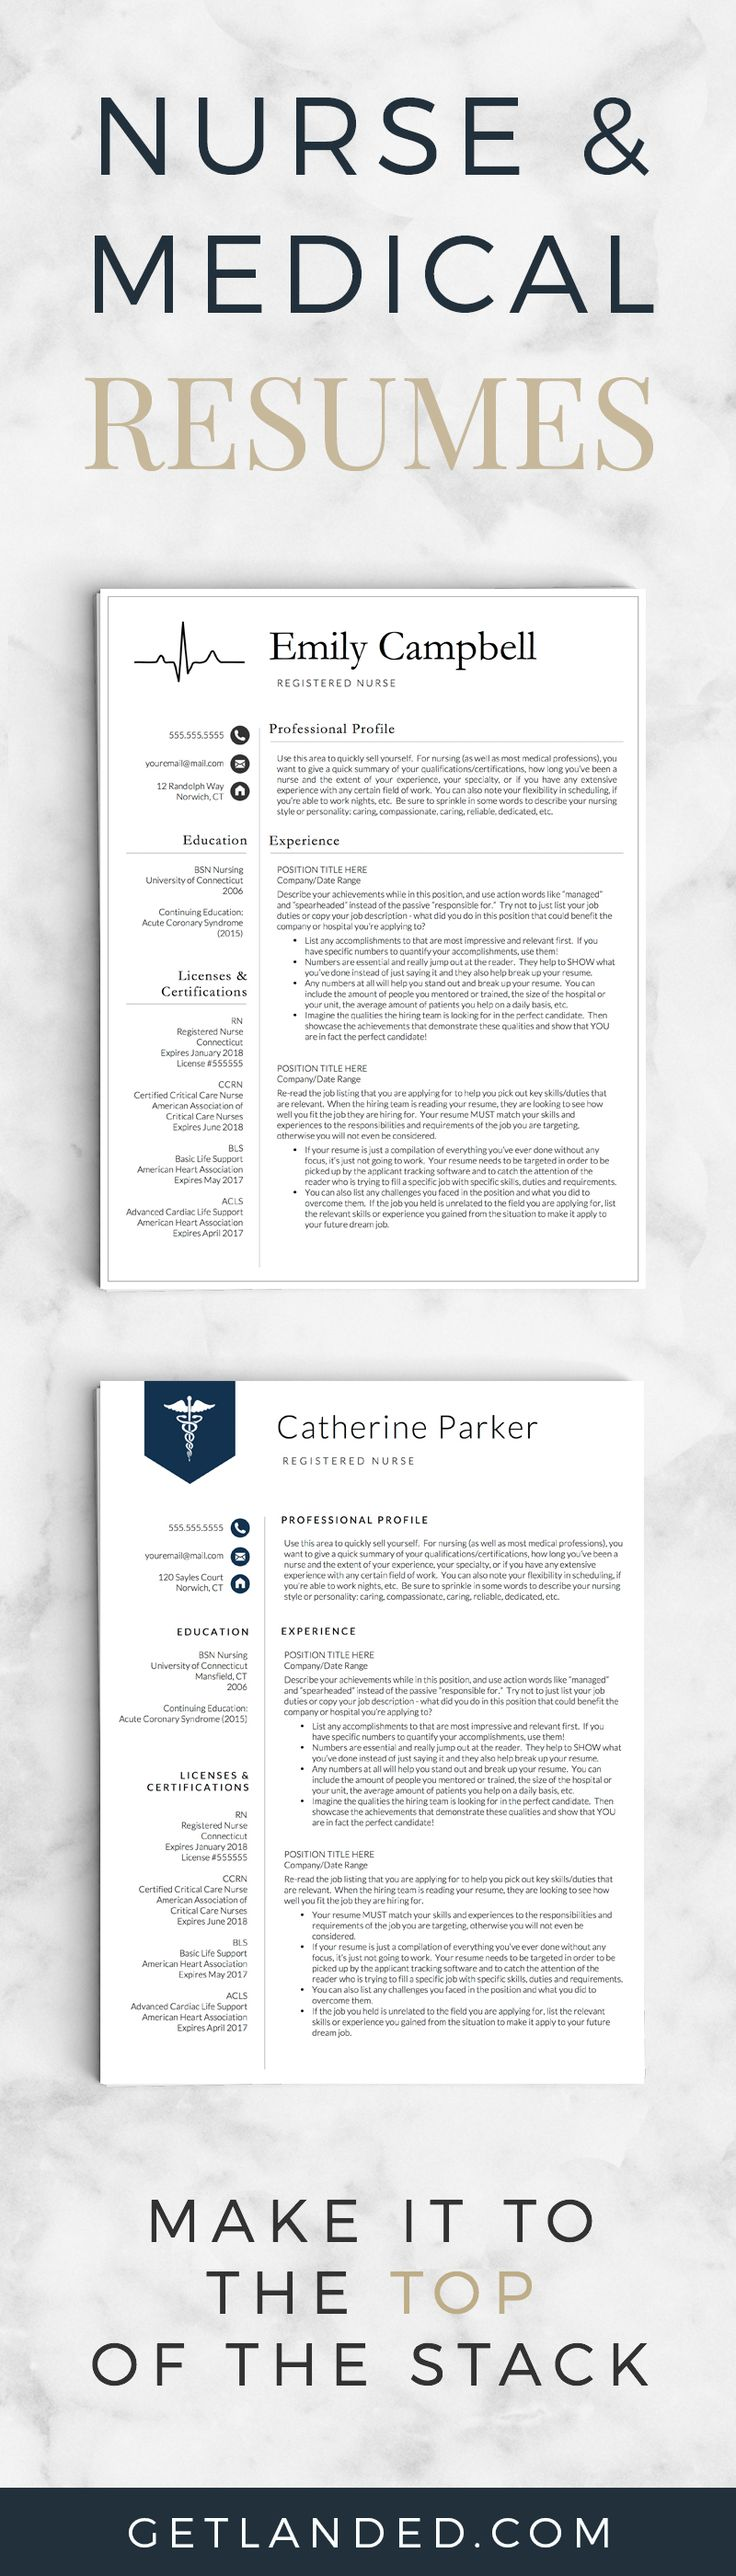 best ideas about rn resume nursing resume nurse resume templates medical resumes resume templates specifically designed for the nursing profession